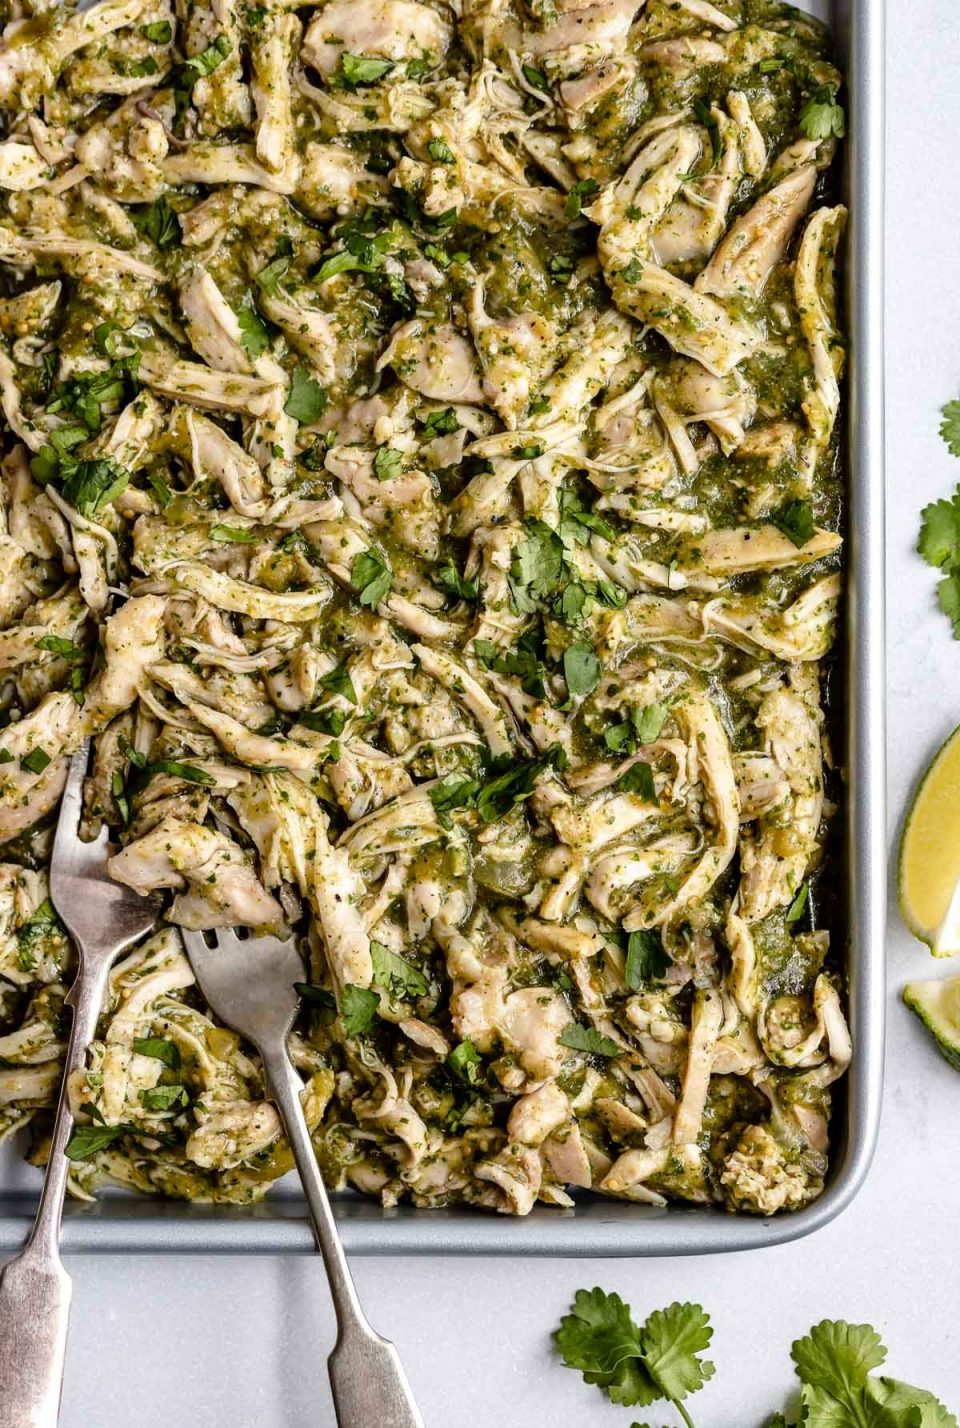 Shredded Salsa Verde Chicken (Pollo Verde) shown on a large sheet pan. 2 forks, used for shredding, are nestled to the chicken on the sheet pan. The sheet pan sits atop a light blue surface. Placed around the sheet pan are cilantro leaves & lime wedges.